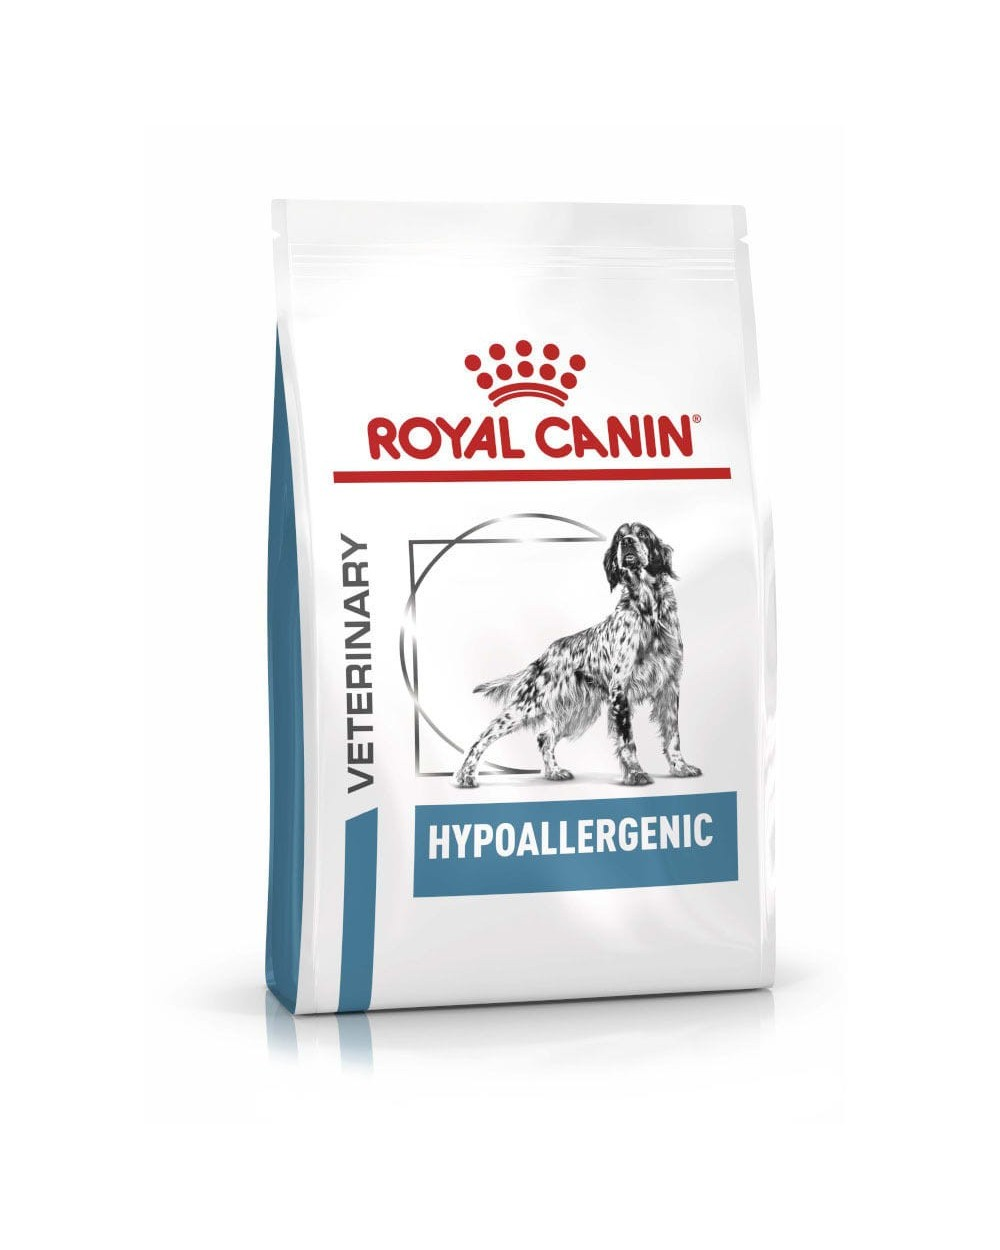 Royal Canin - Hypoallergenic